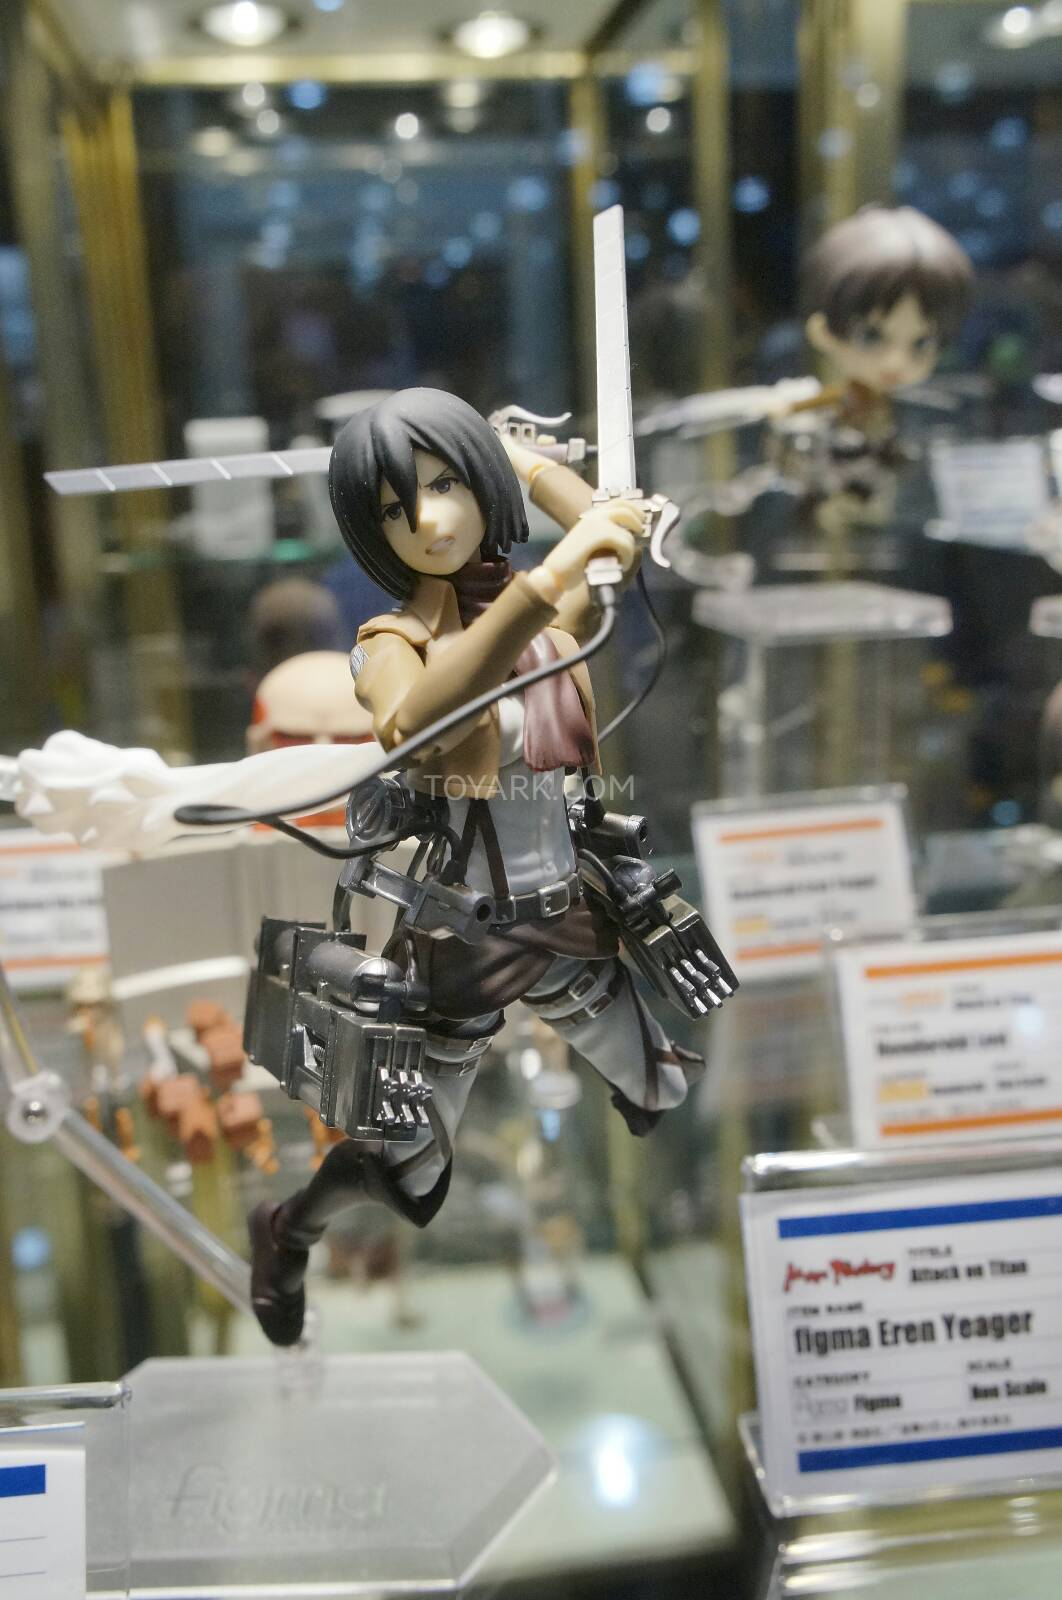 [EVENTO] Toy Fair 2014 - Good Smile Company / Max Factory / Phat Company / FREEing Toy-Fair-2014-Good-Smile-and-Max-Factory-Display-013